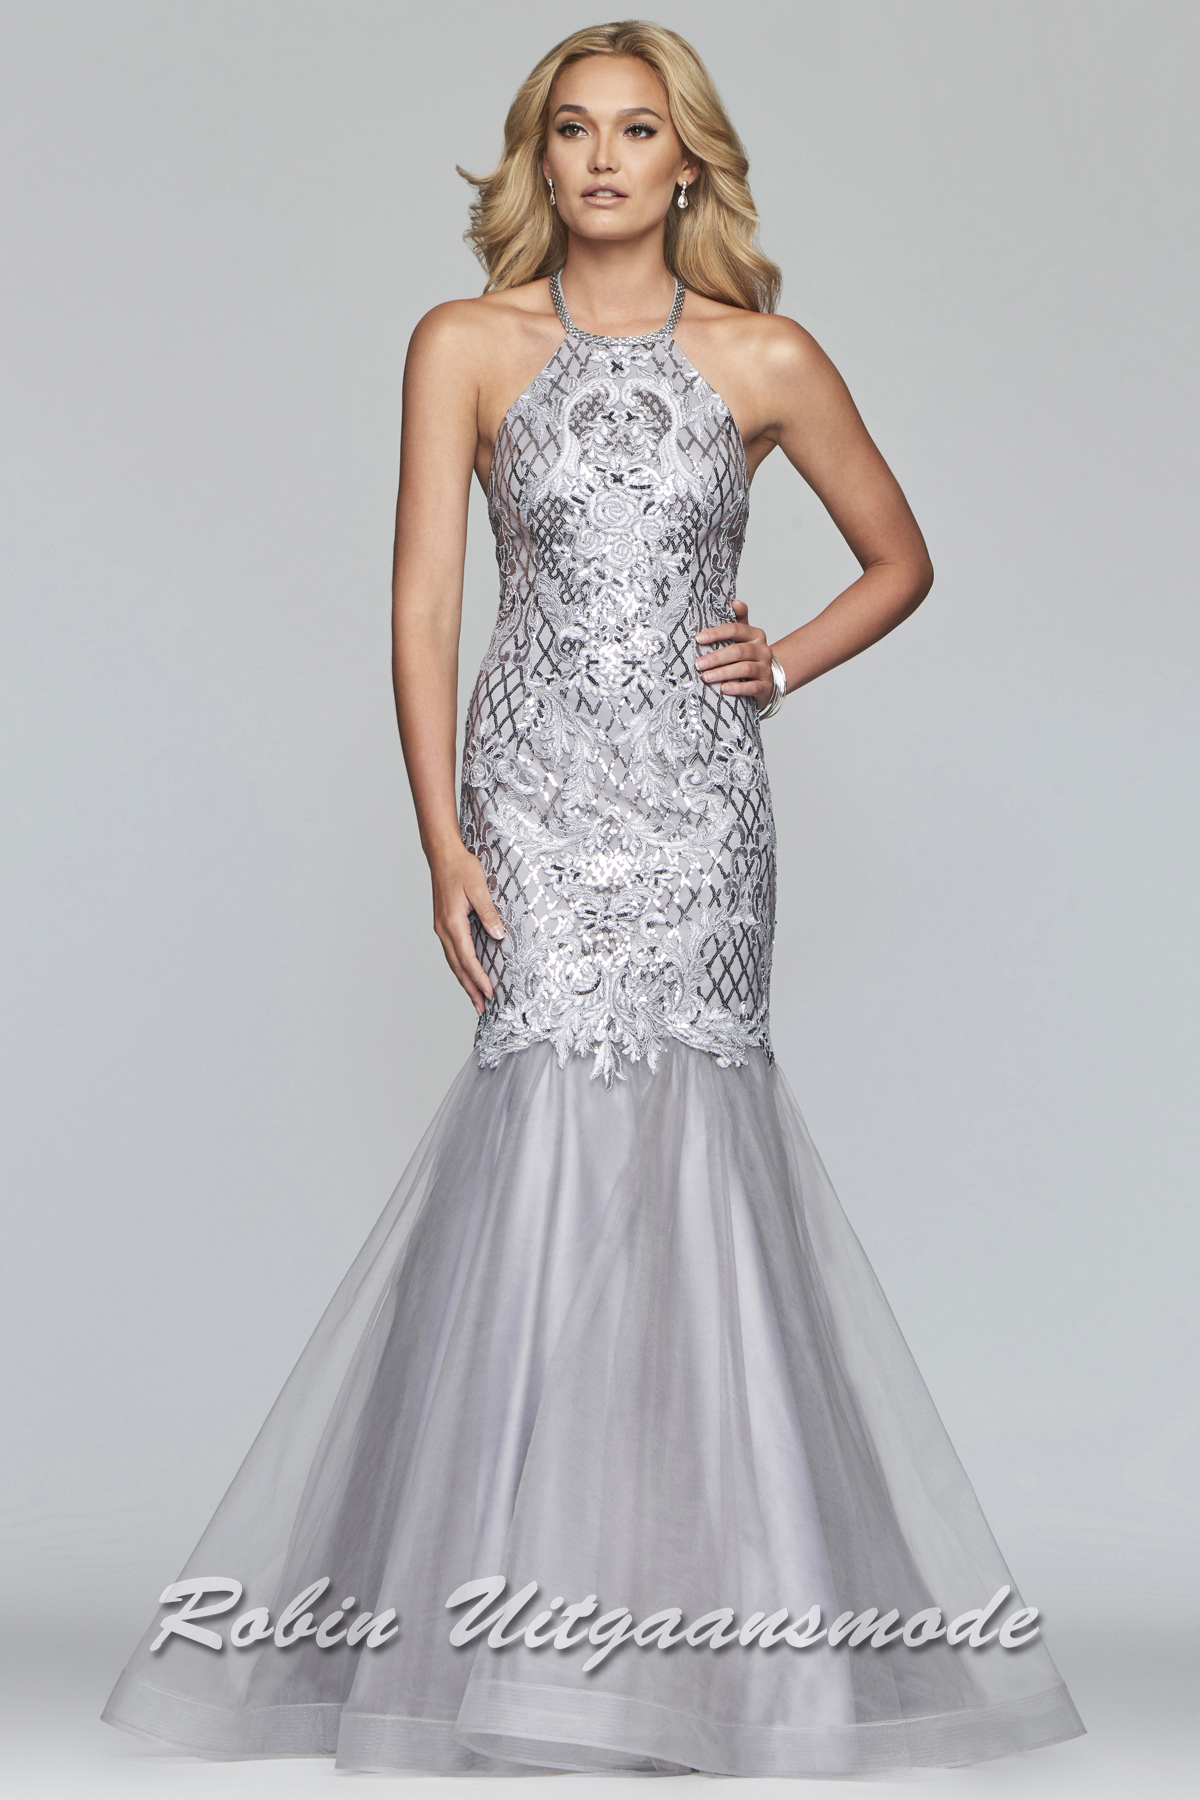 c1b70da027c Sequin dresses   Shimmering gowns beaded with stones and lovers   Robin